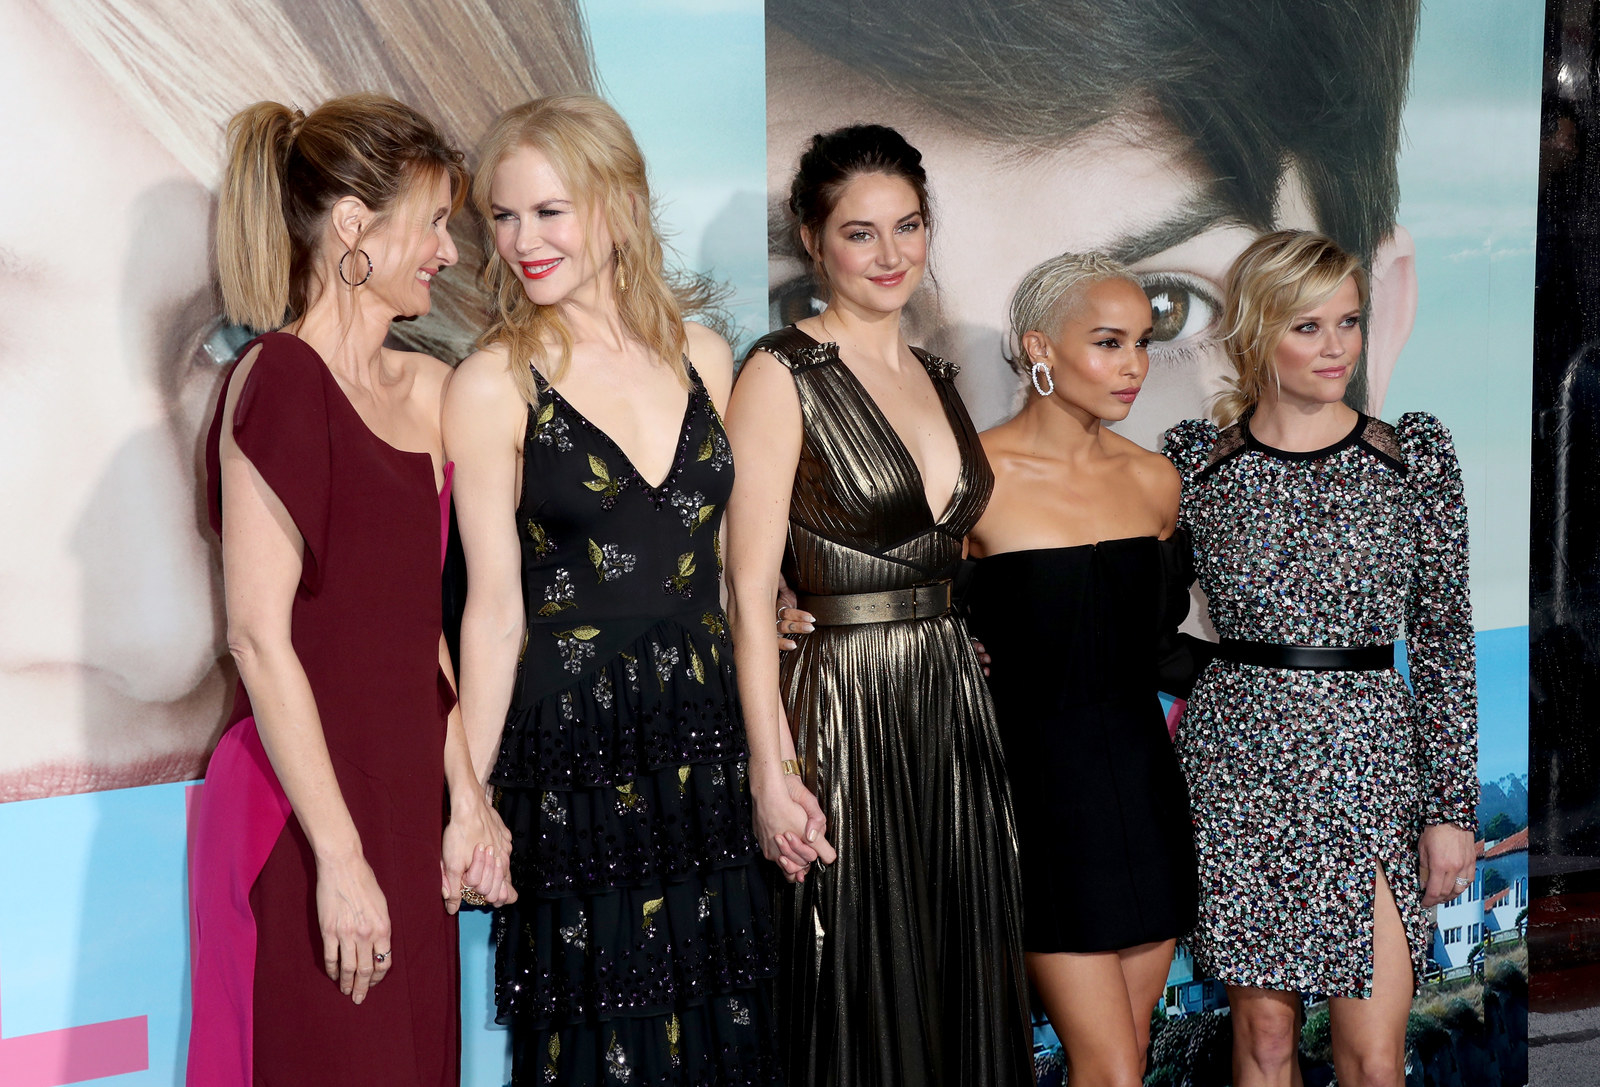 Alright, by now everyone knows that the cast of  Big Little Lies  are basically the greatest friends.